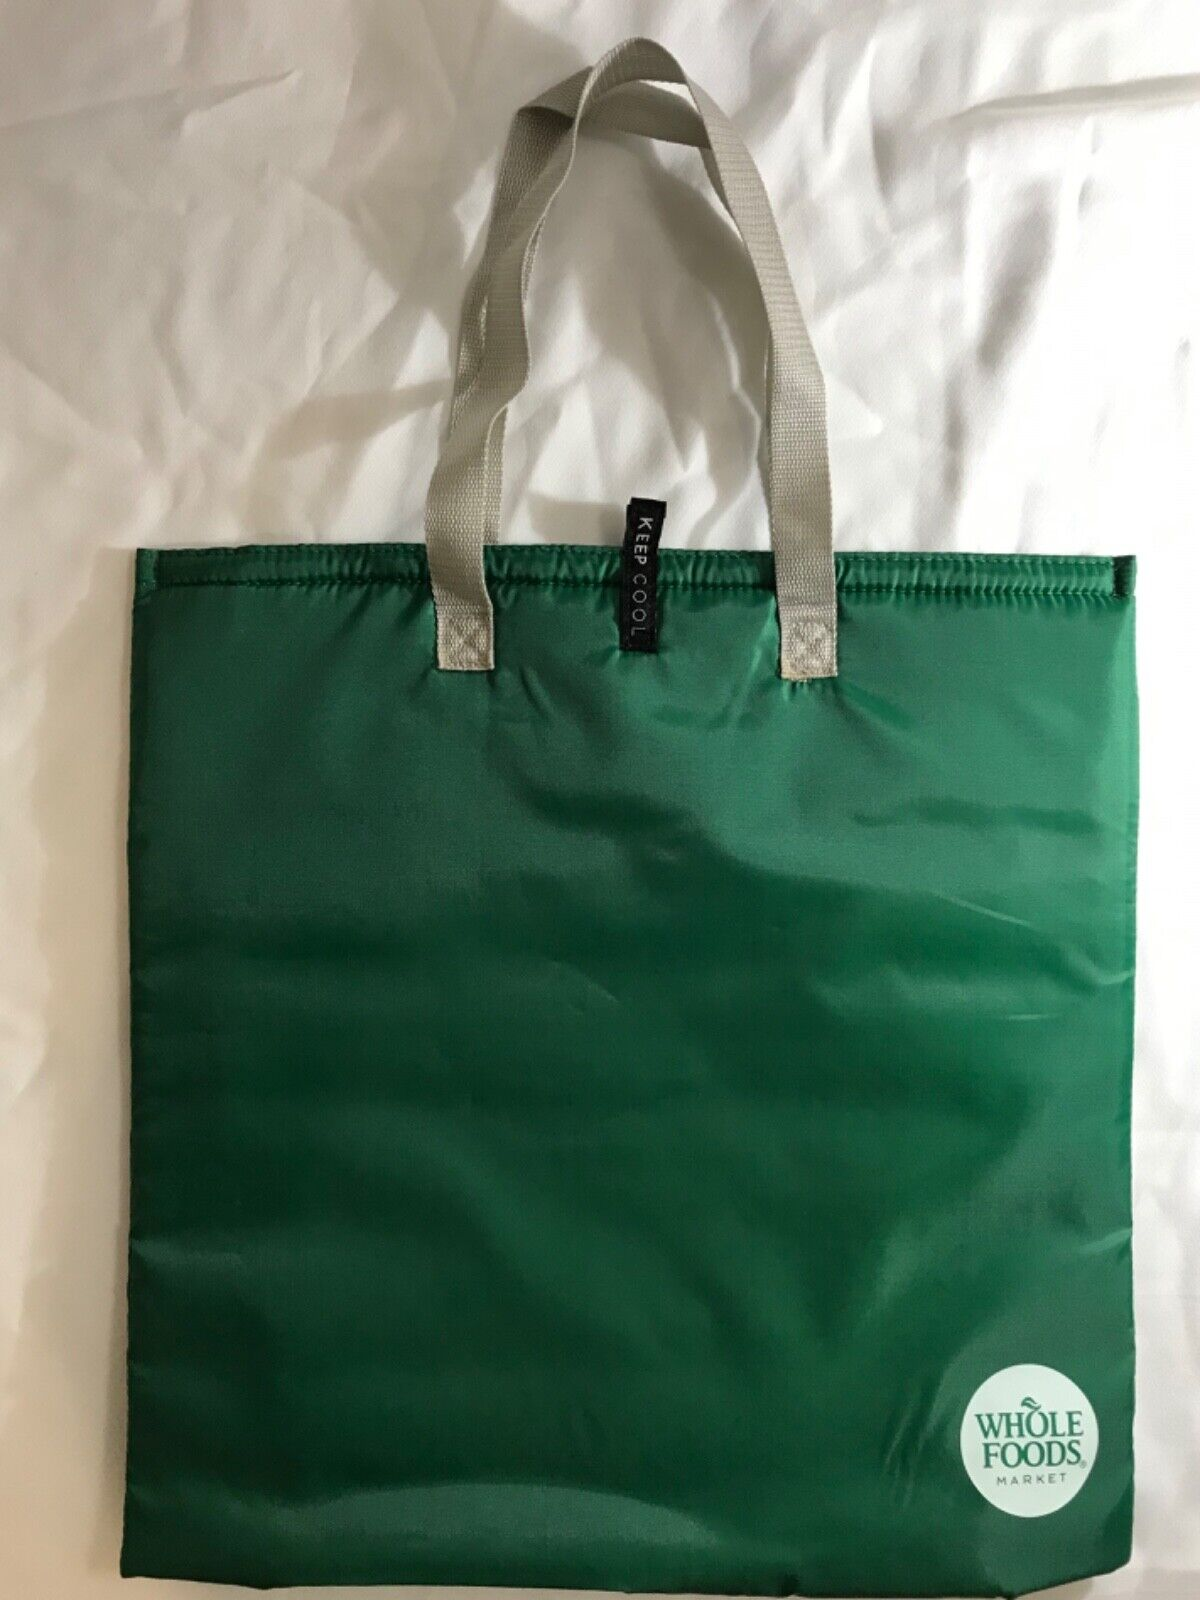 Whole Foods Insulated Cooler Grocery Tote Bag, Large